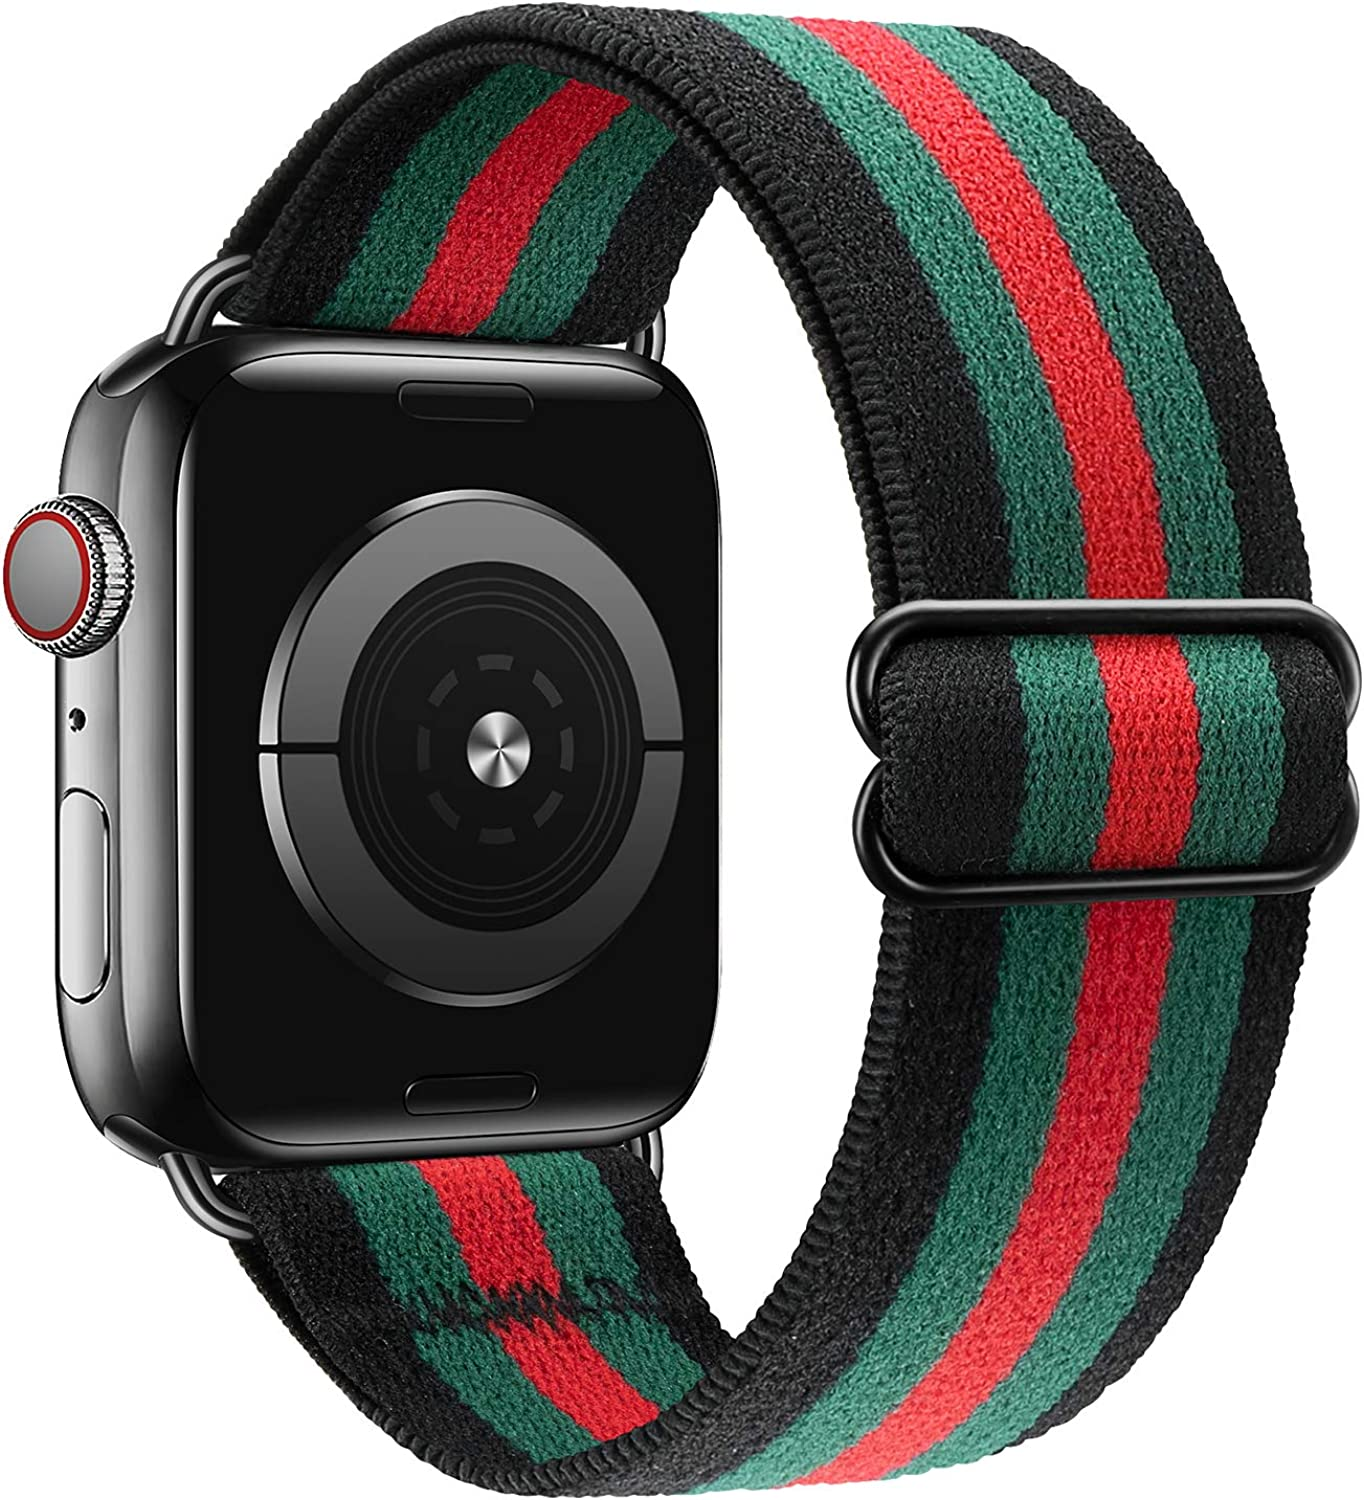 MEULOT Stretchy Braided Solo Loop Band Compatible with Apple Watch Band 38mm 40mm 42mm 44mm Adjustable Nylon Elastic Sport Women Men Strap Compatible with iWatch Series 6/5/4/3/2/1 SE